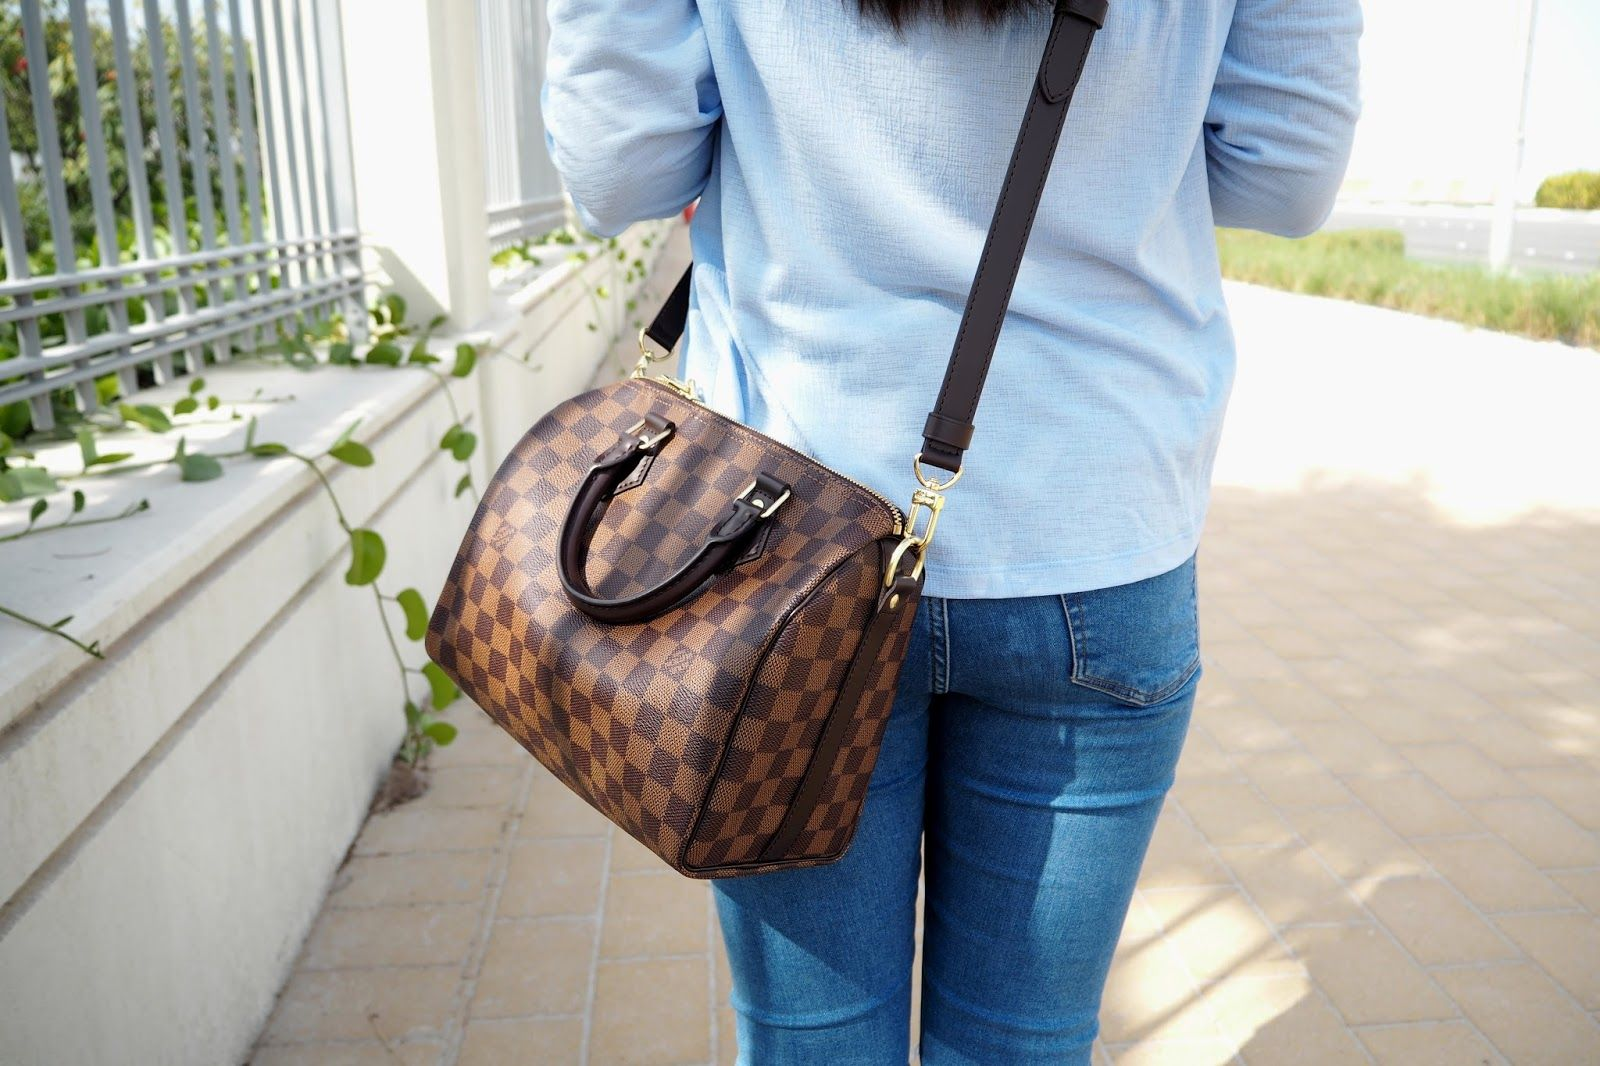 f1196e522f3a Louis Vuitton Speedy Bandouliere 25 Review & Outfit Shots | My Style ...